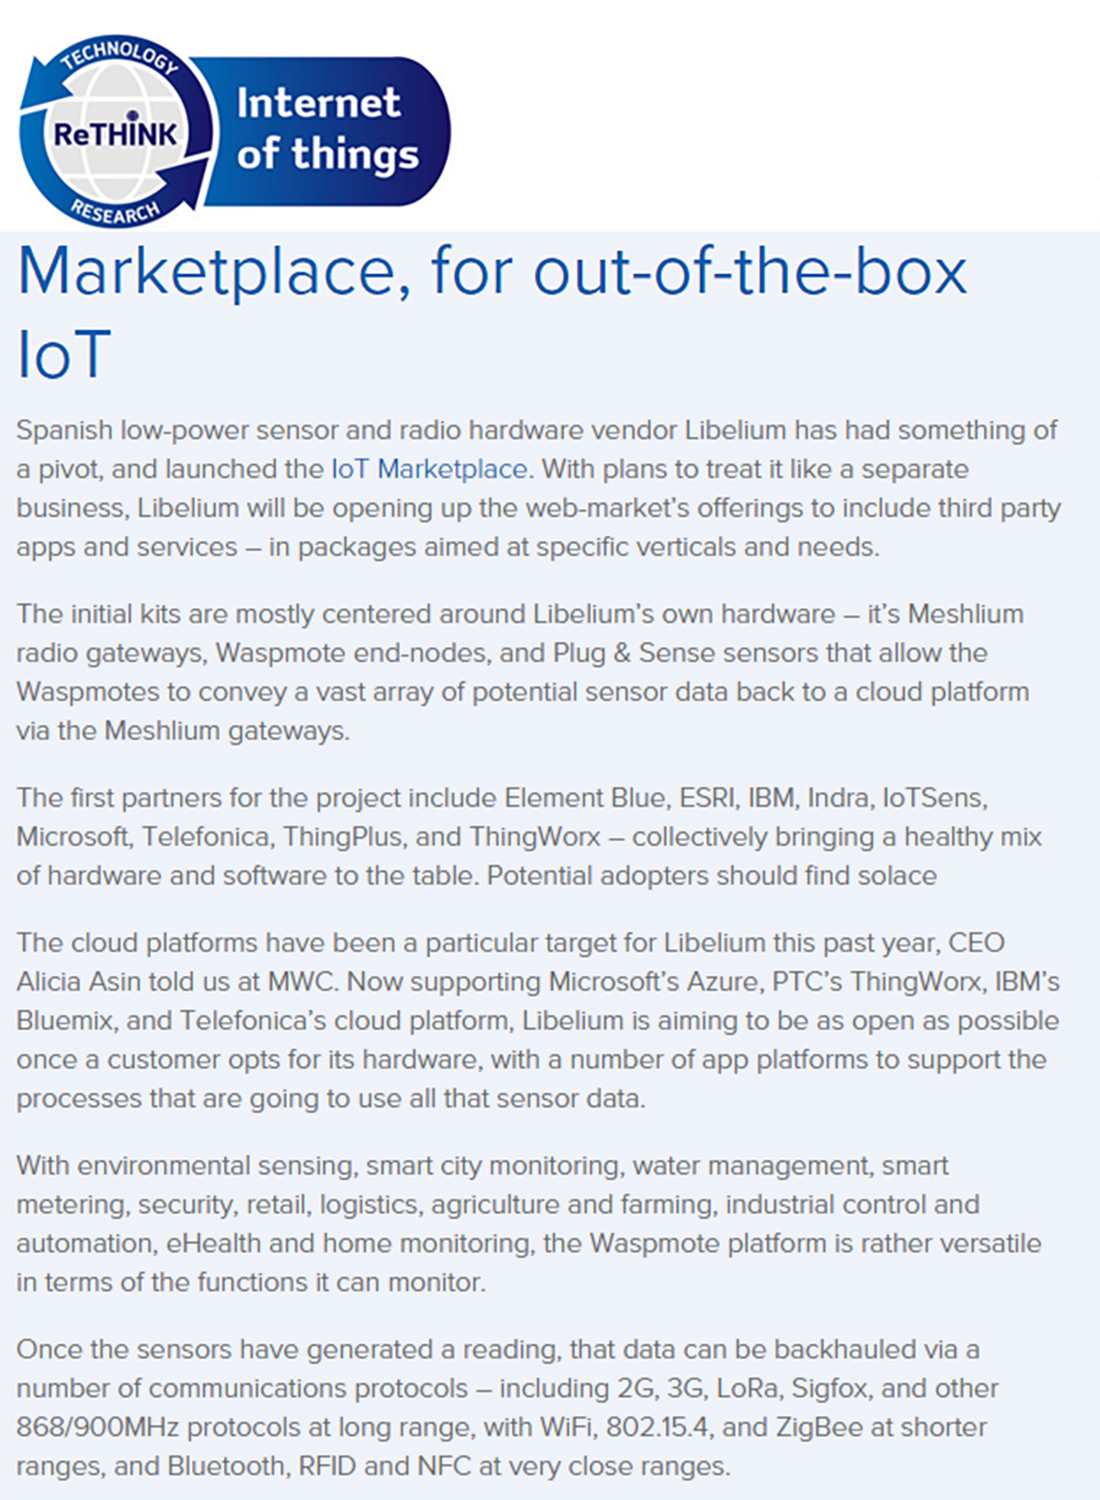 Rethink-iot.com - Marketplace, for out-of-the-box IoT